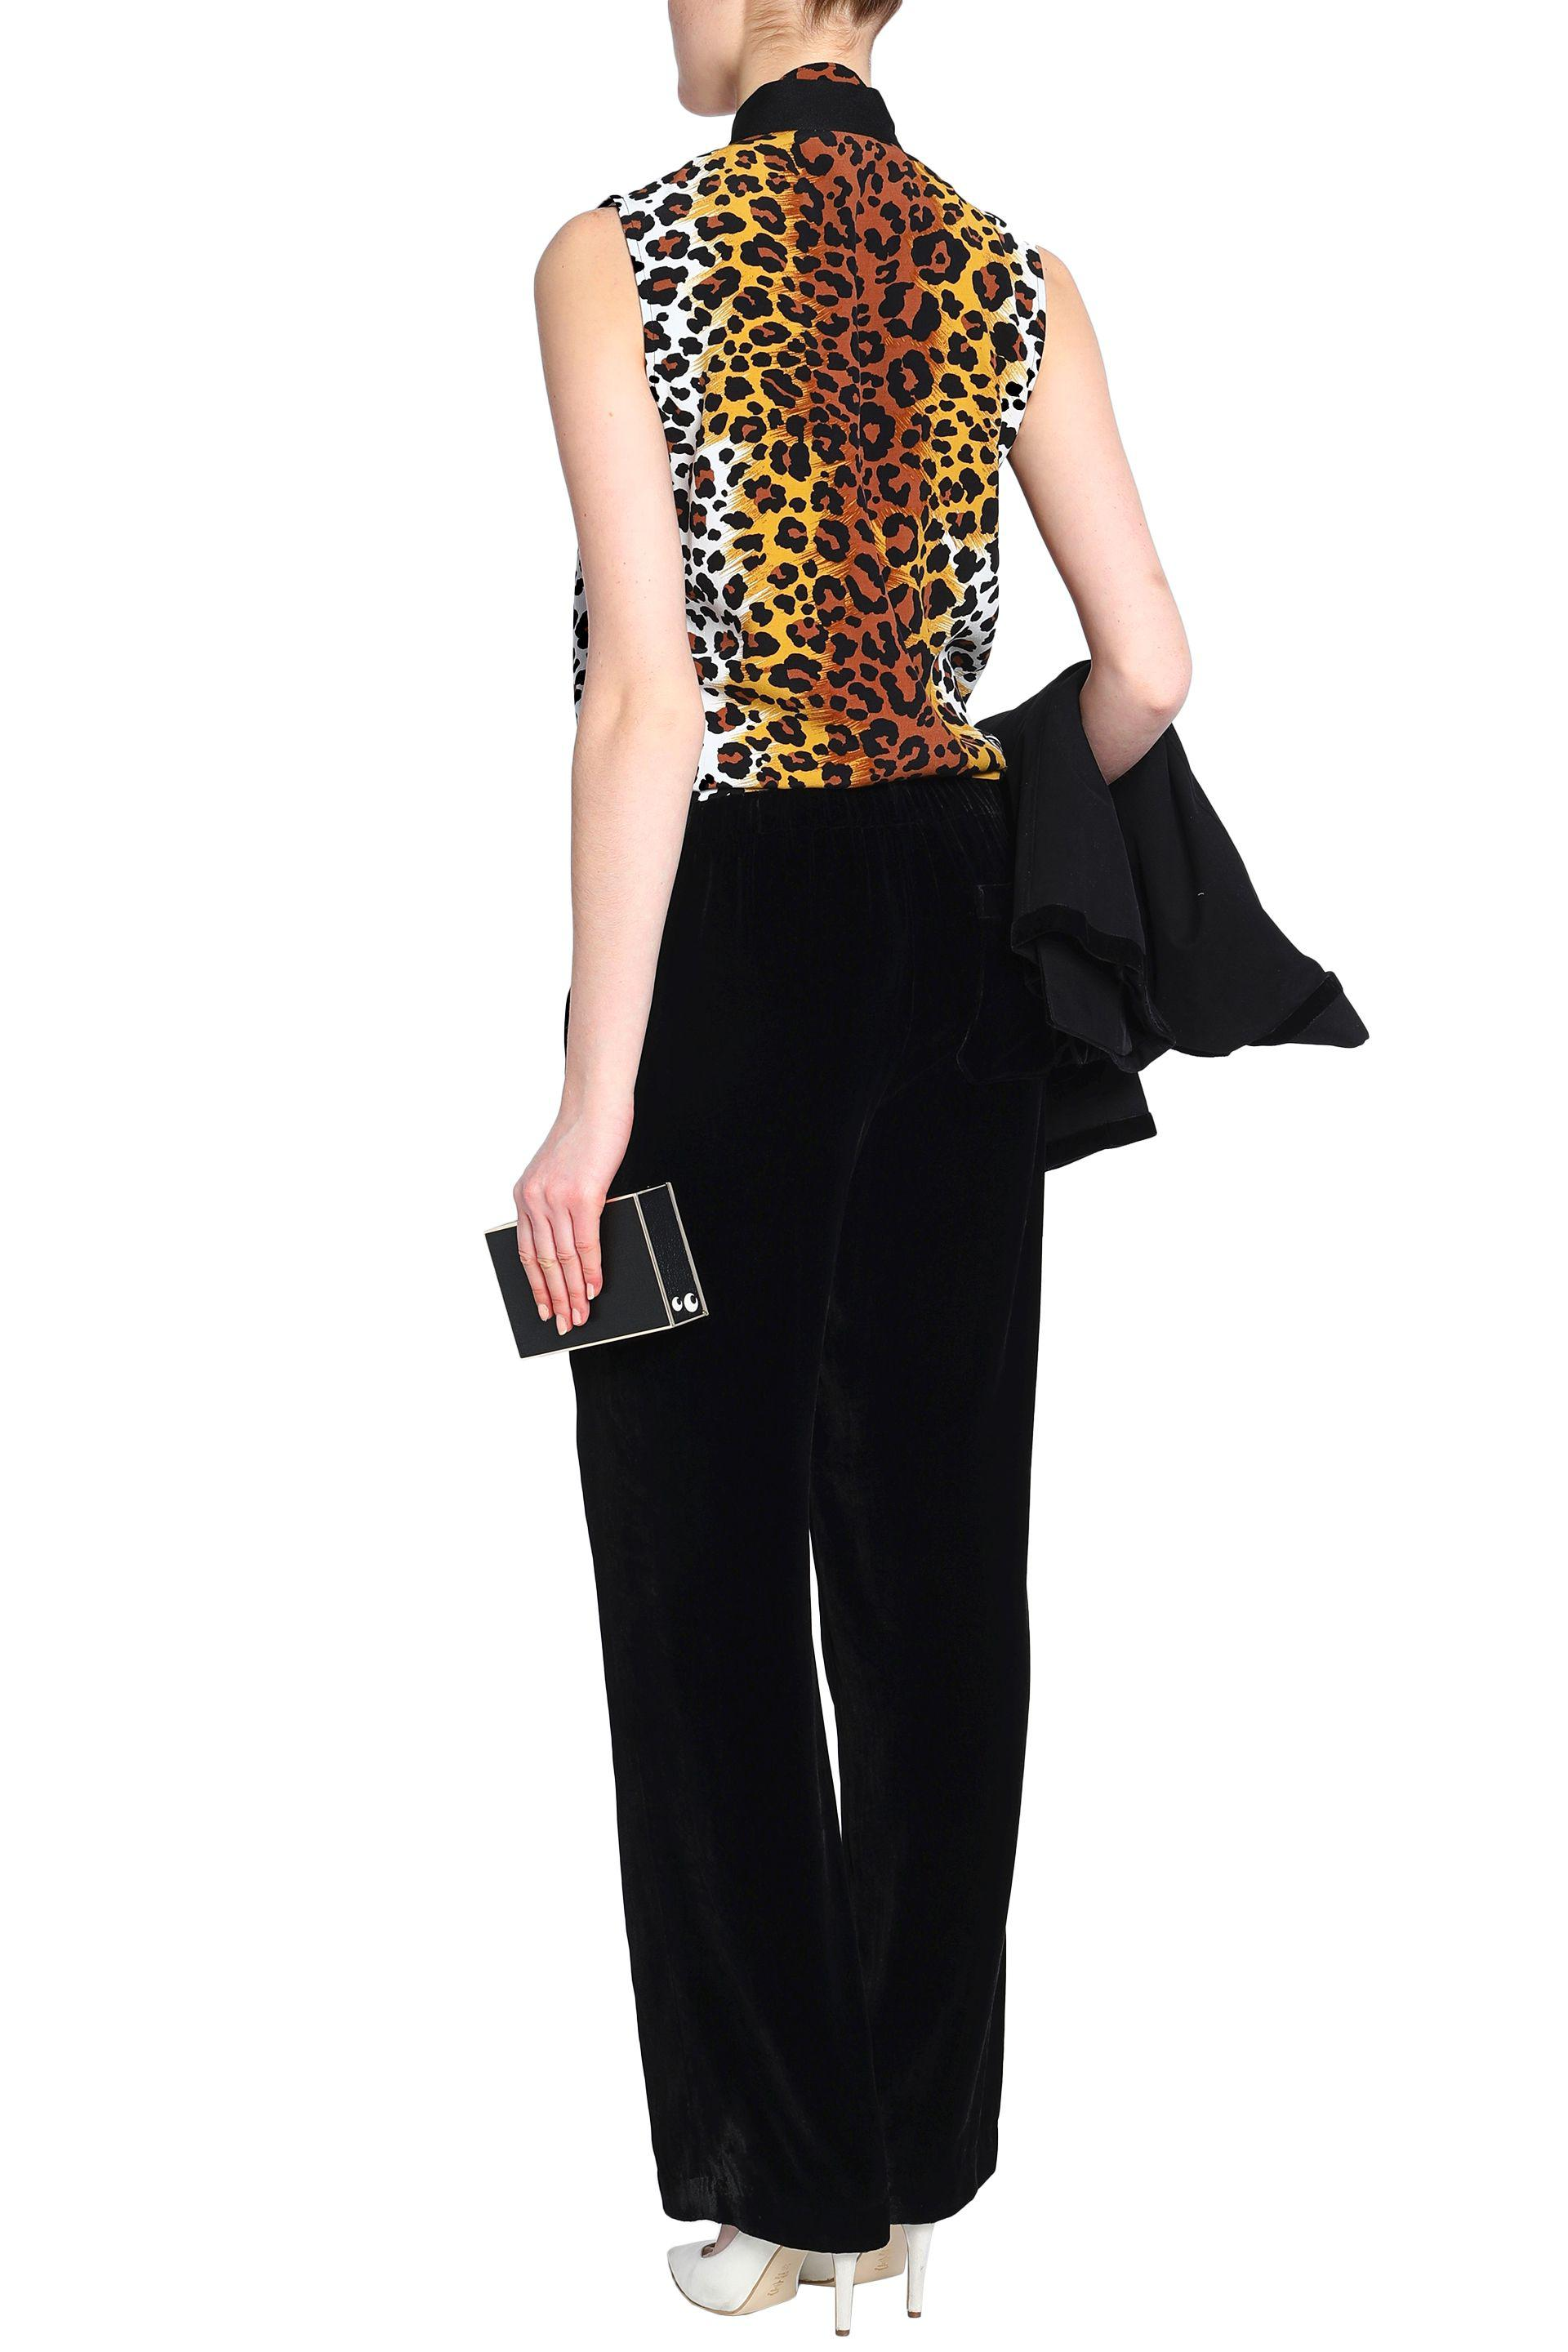 Comfortable Cheap Price Deals Cheap Price Love Moschino Woman Pussy-bow Leopard-print Crepe Top Animal Print Size 46 Love Moschino 8paVFB